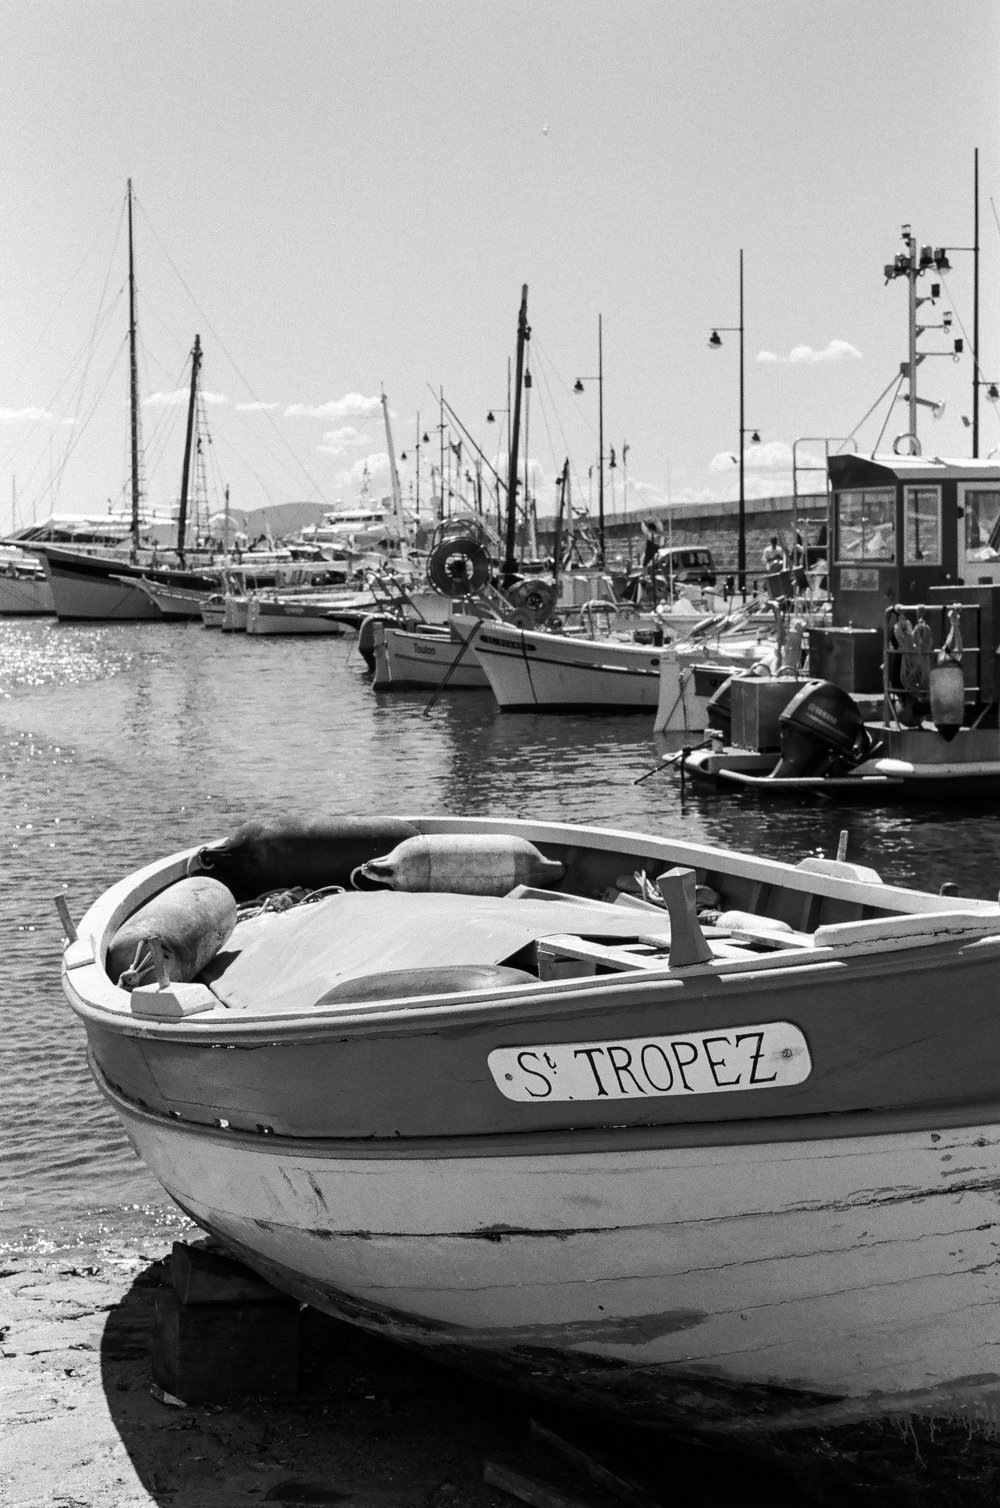 Port de Saint-Tropez, St. Tropez. France. 2017.